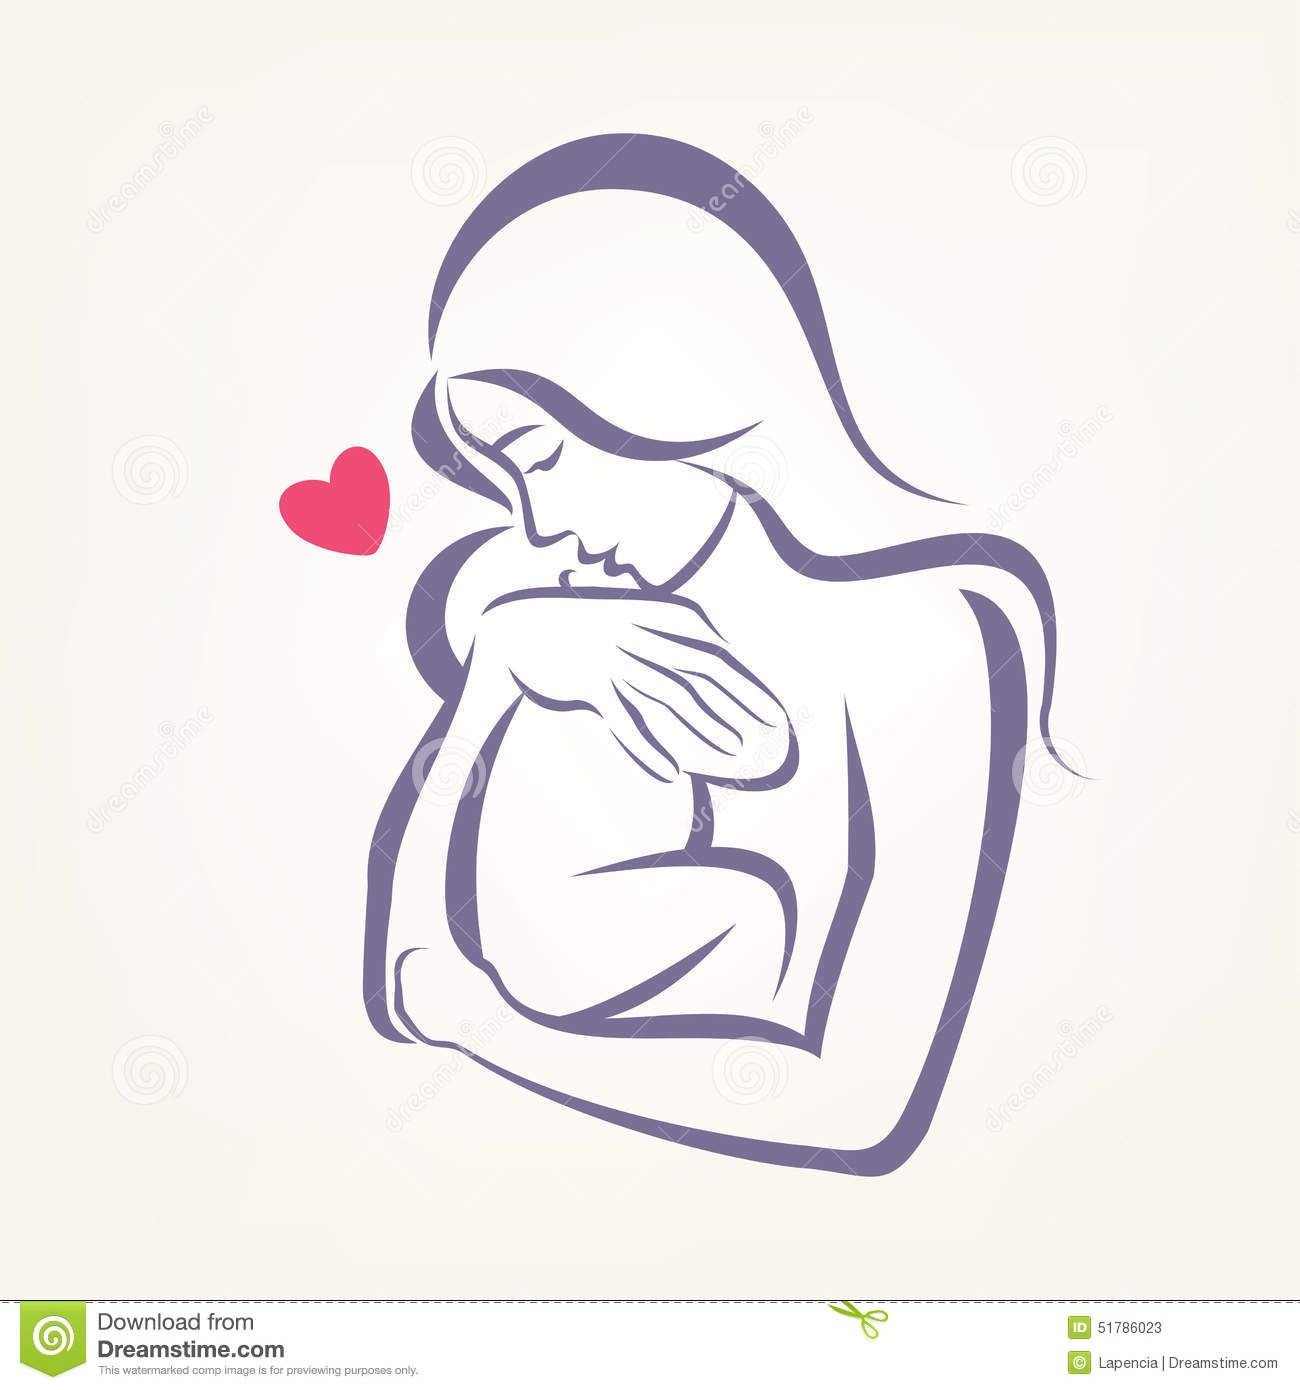 Mother kissing her child download from over 44 million high mother kissing her child download from over 44 million high quality stock photos images vectors sign up for free today biocorpaavc